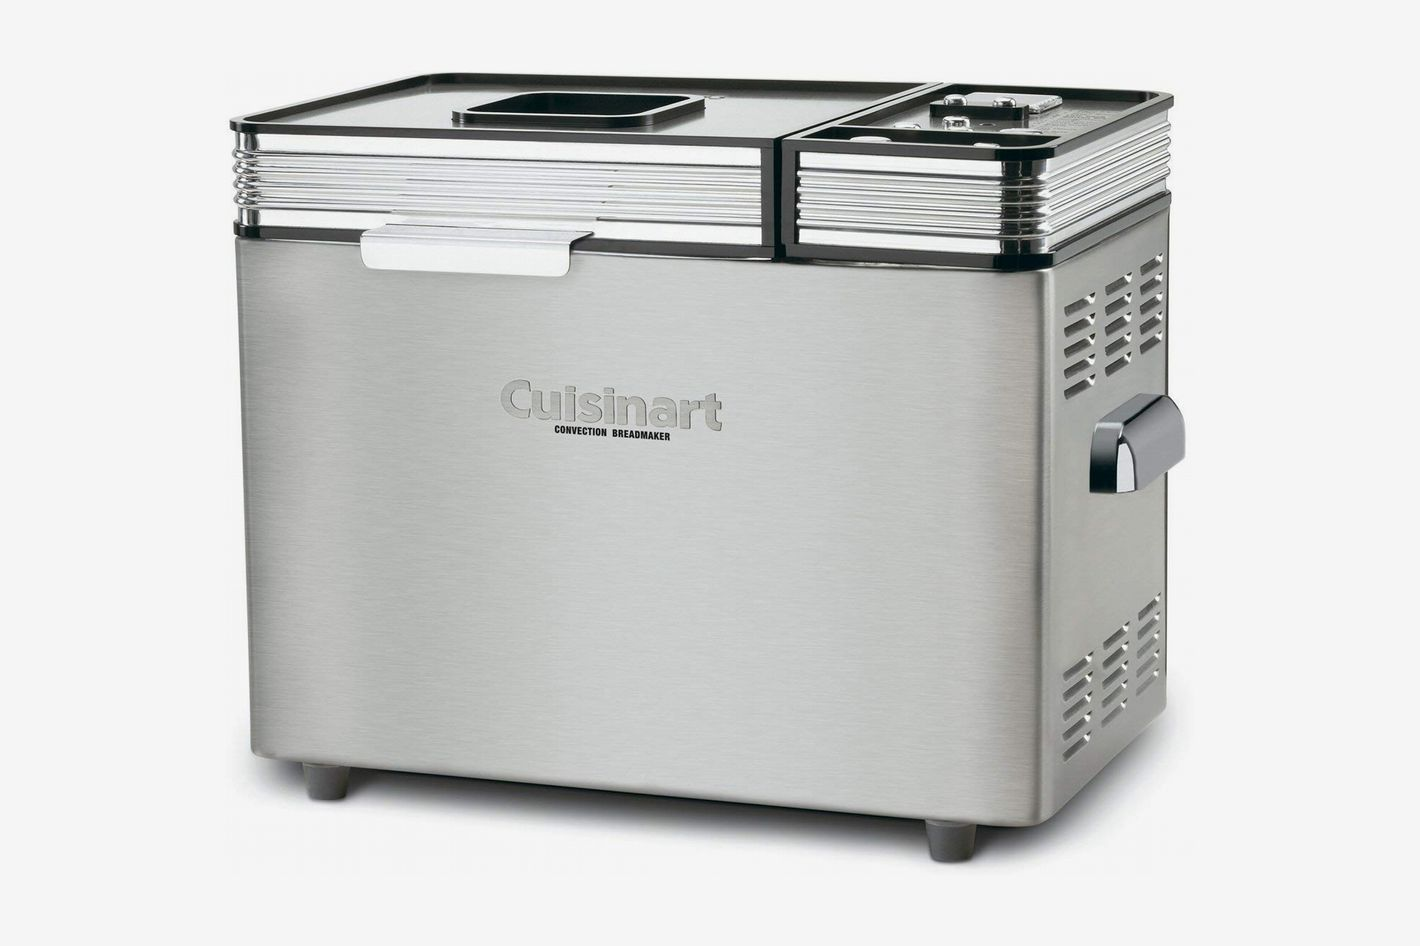 Cuisinart 2-Pound Convection Bread Maker